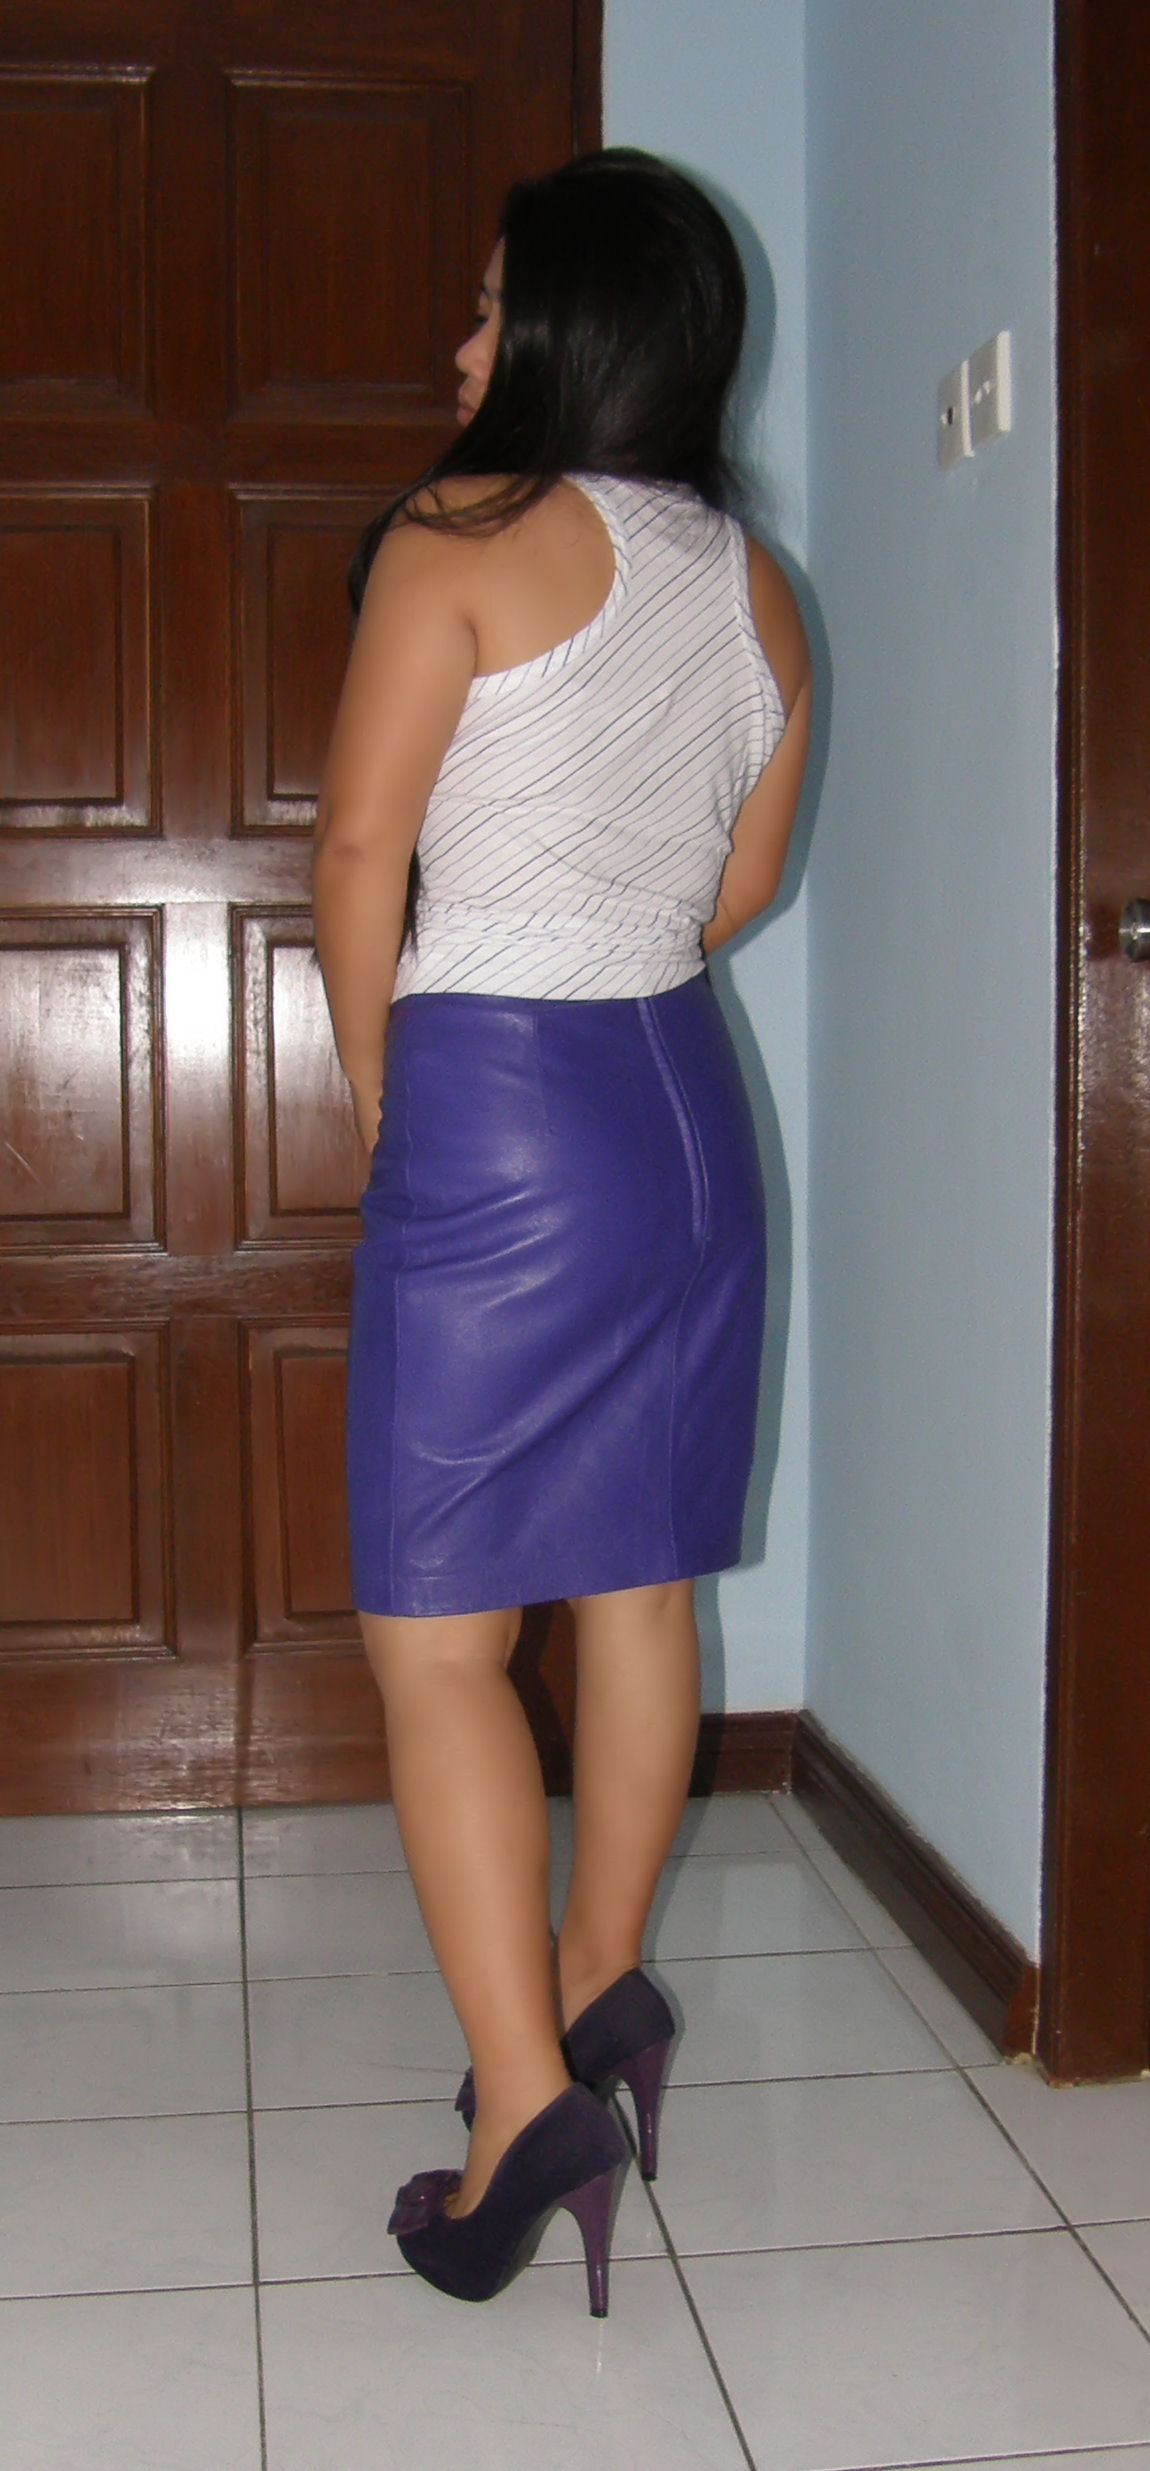 leather skirt and heels flickr photo